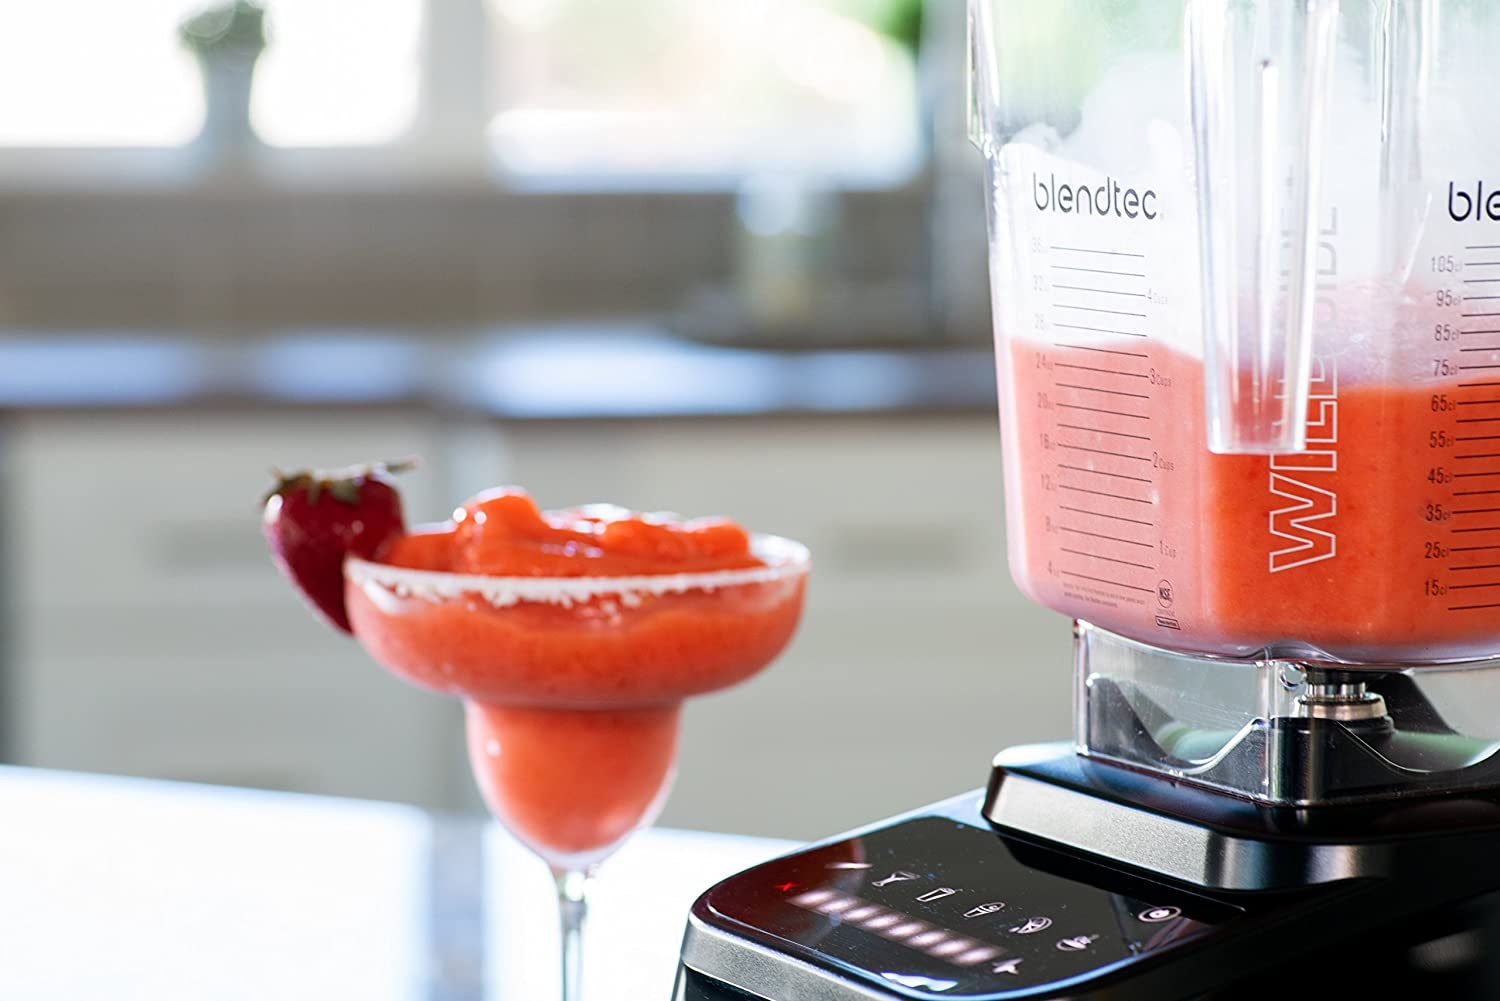 Best Blendtec Designer Series Blender